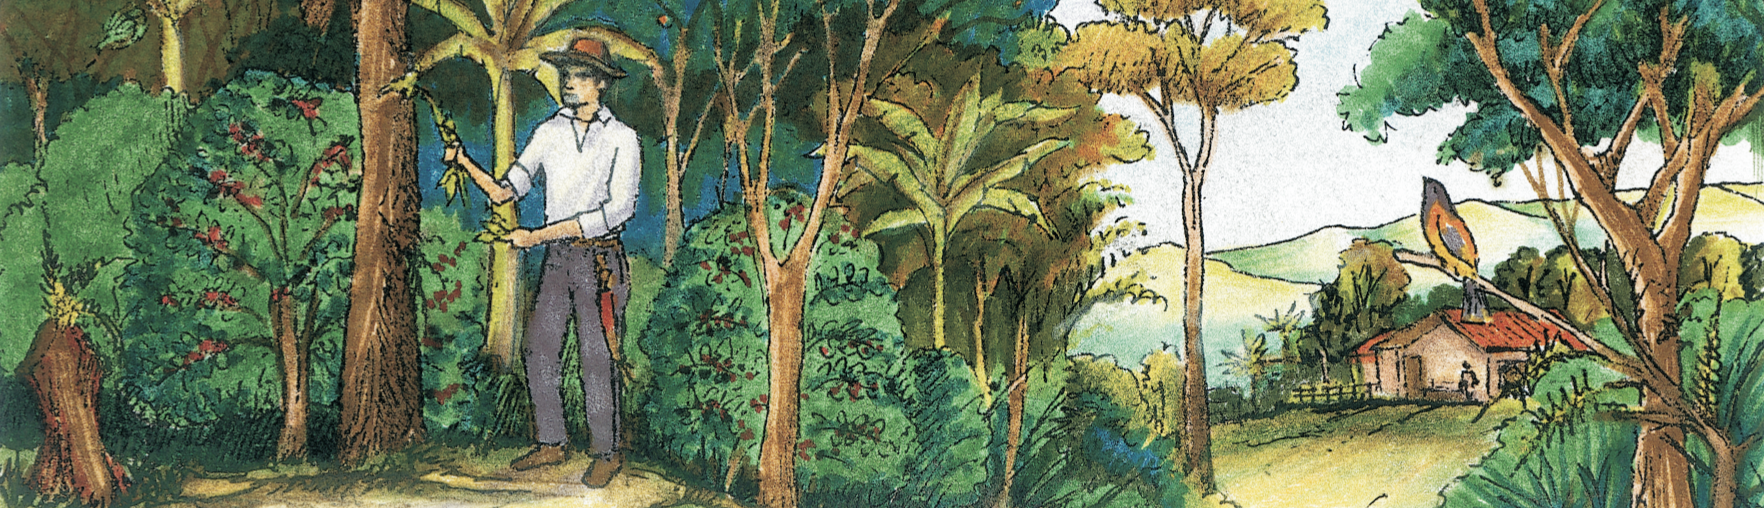 This illustration shows a Bird Friendly coffee grower tending to a tree in his coffee forest